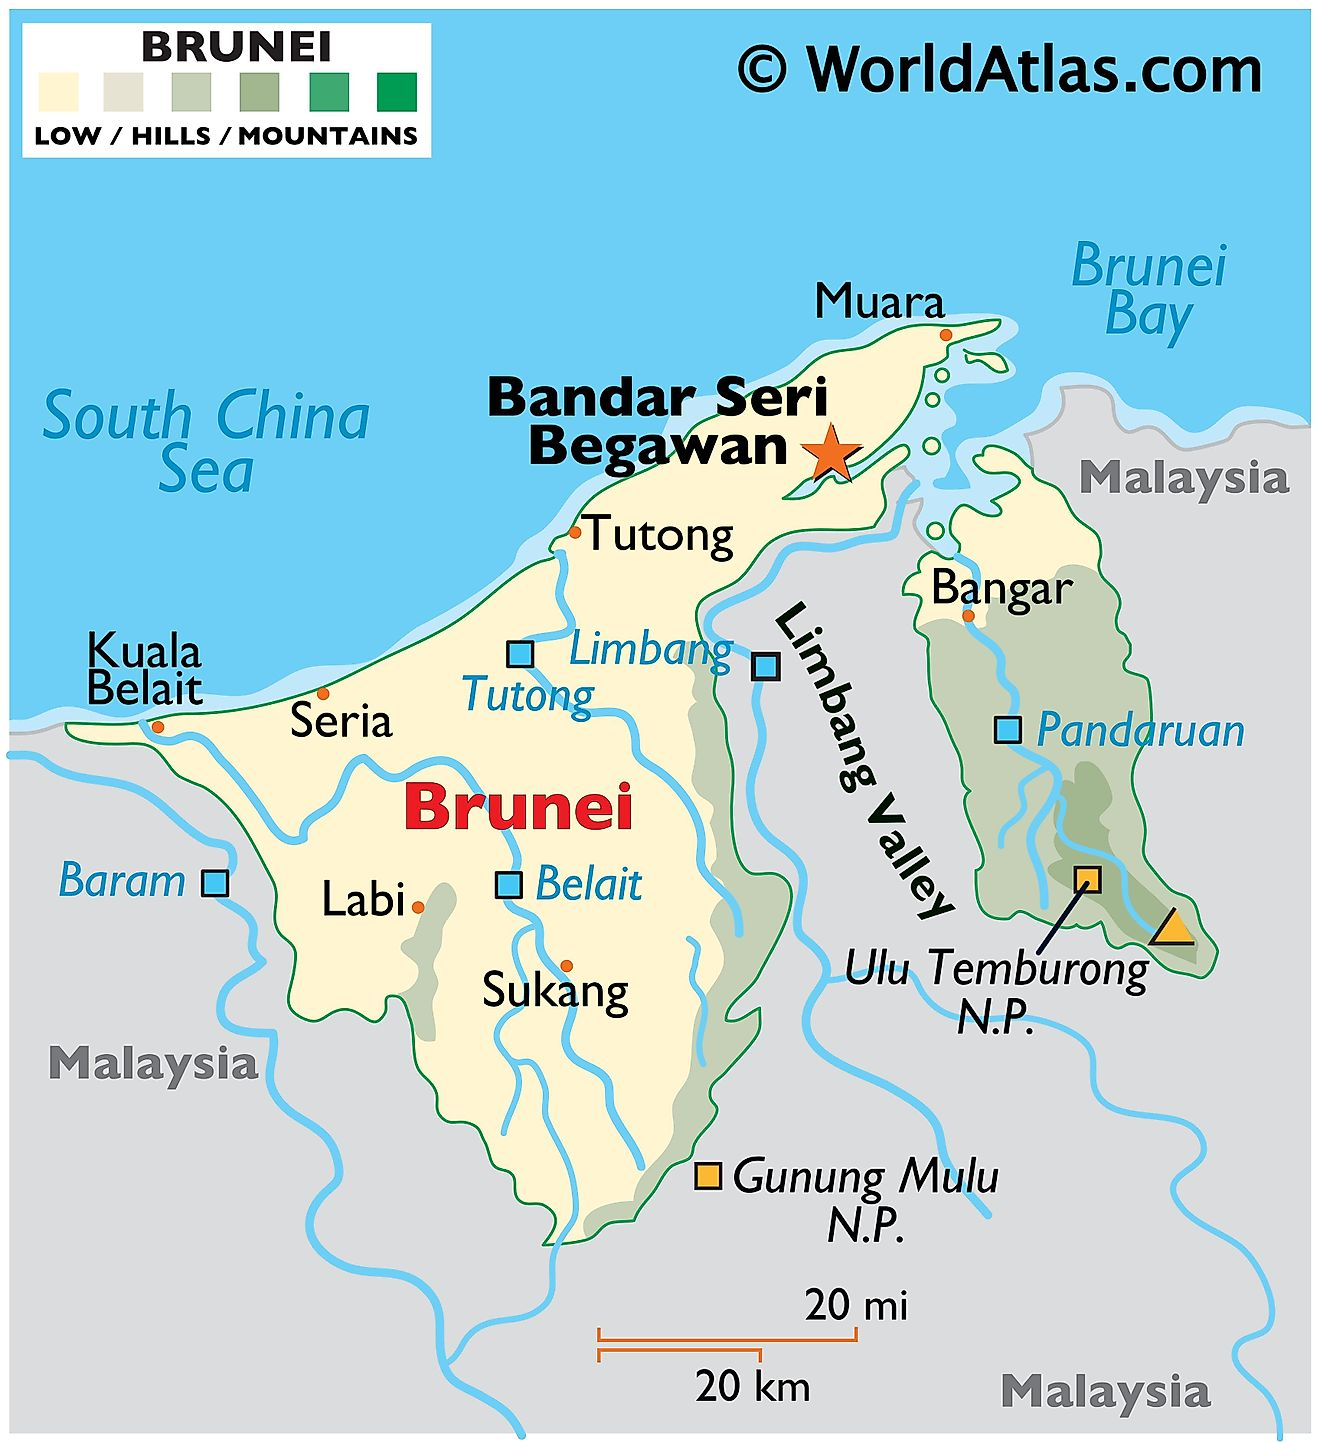 Physical Map of Brunei showing relief, major rivers, national park, South China Sea, bordering countries, major cities and towns, etc.